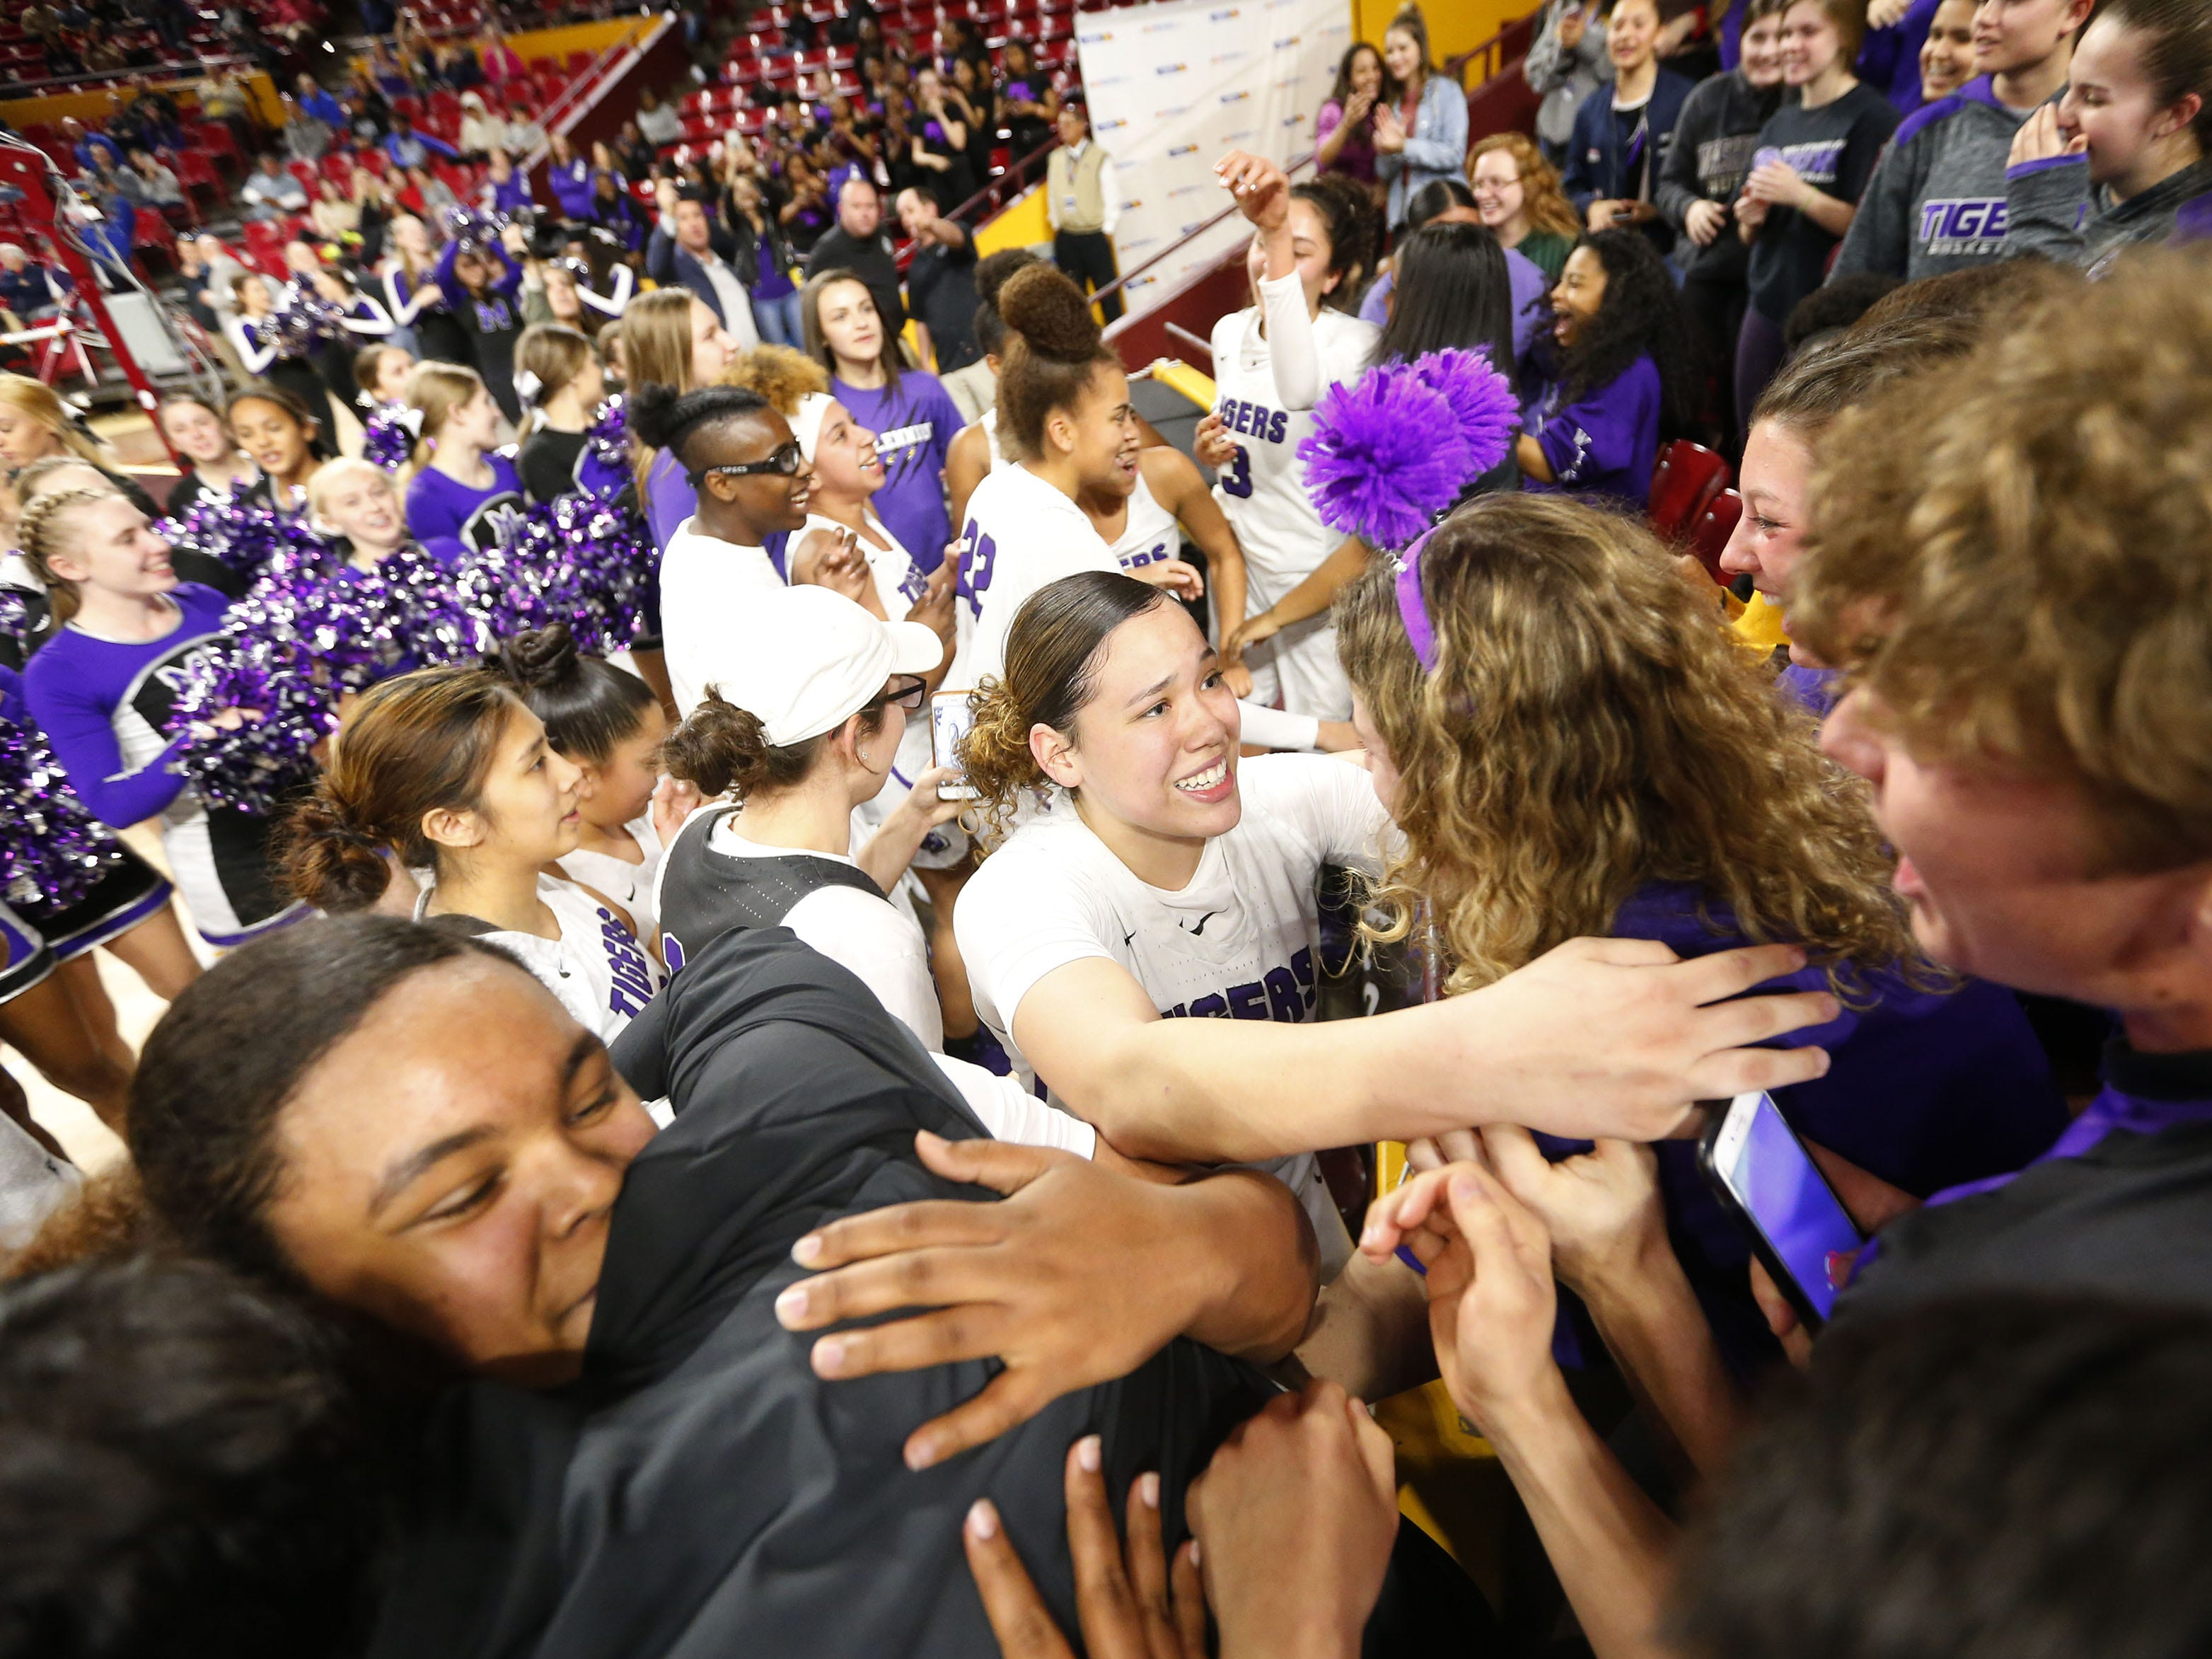 Millennium players celebrate with the student section after winning the Girls State 5A Championship game against Gilbert in Tempe, Ariz. Feb. 25, 2019.